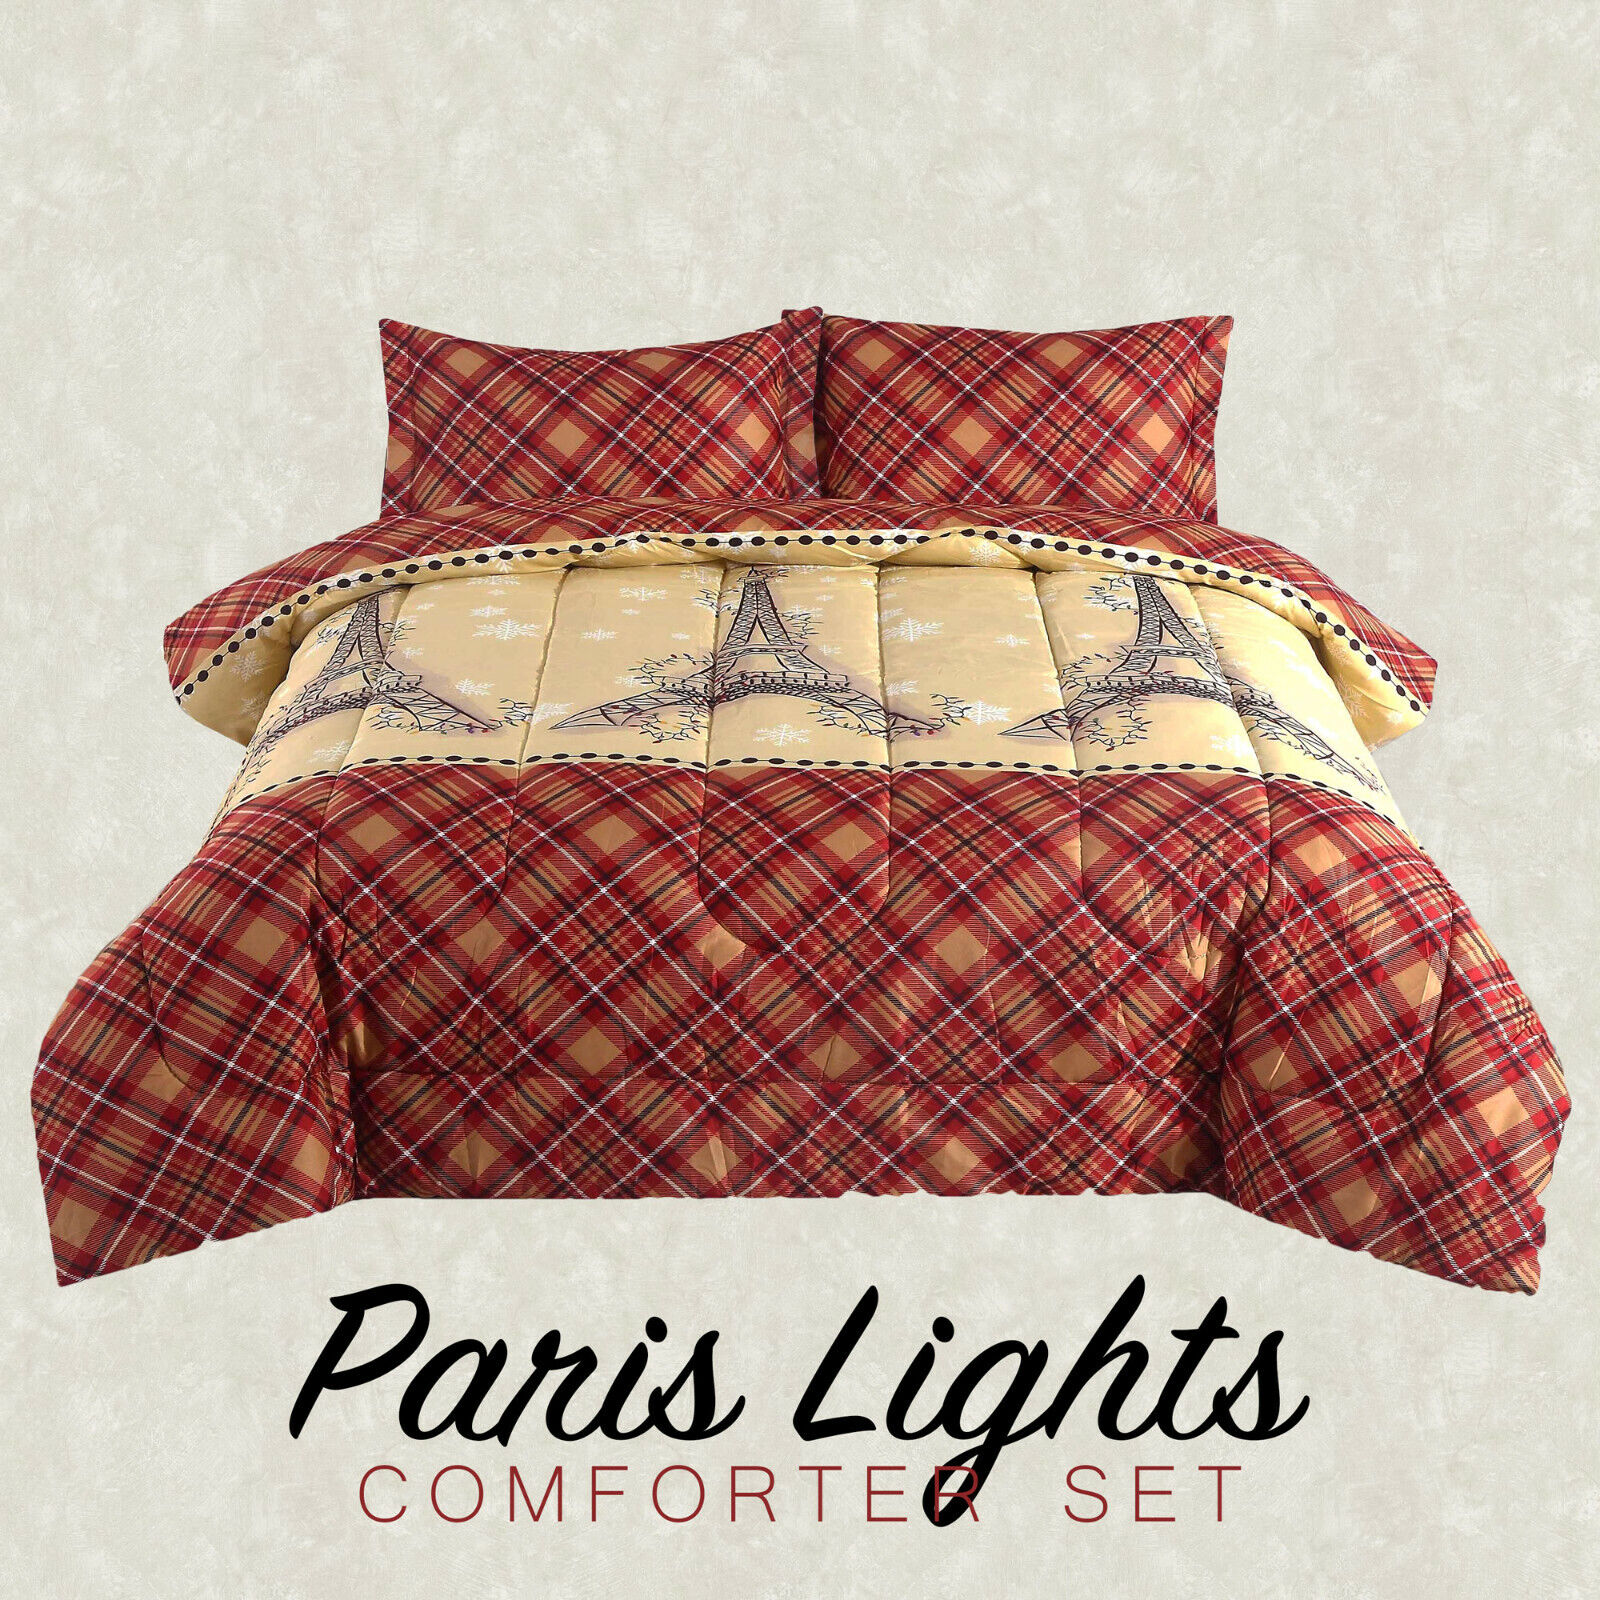 Paris Lights Eiffel Tower Plaid French Country Comforter Bedding Set, Red Tan Bedding